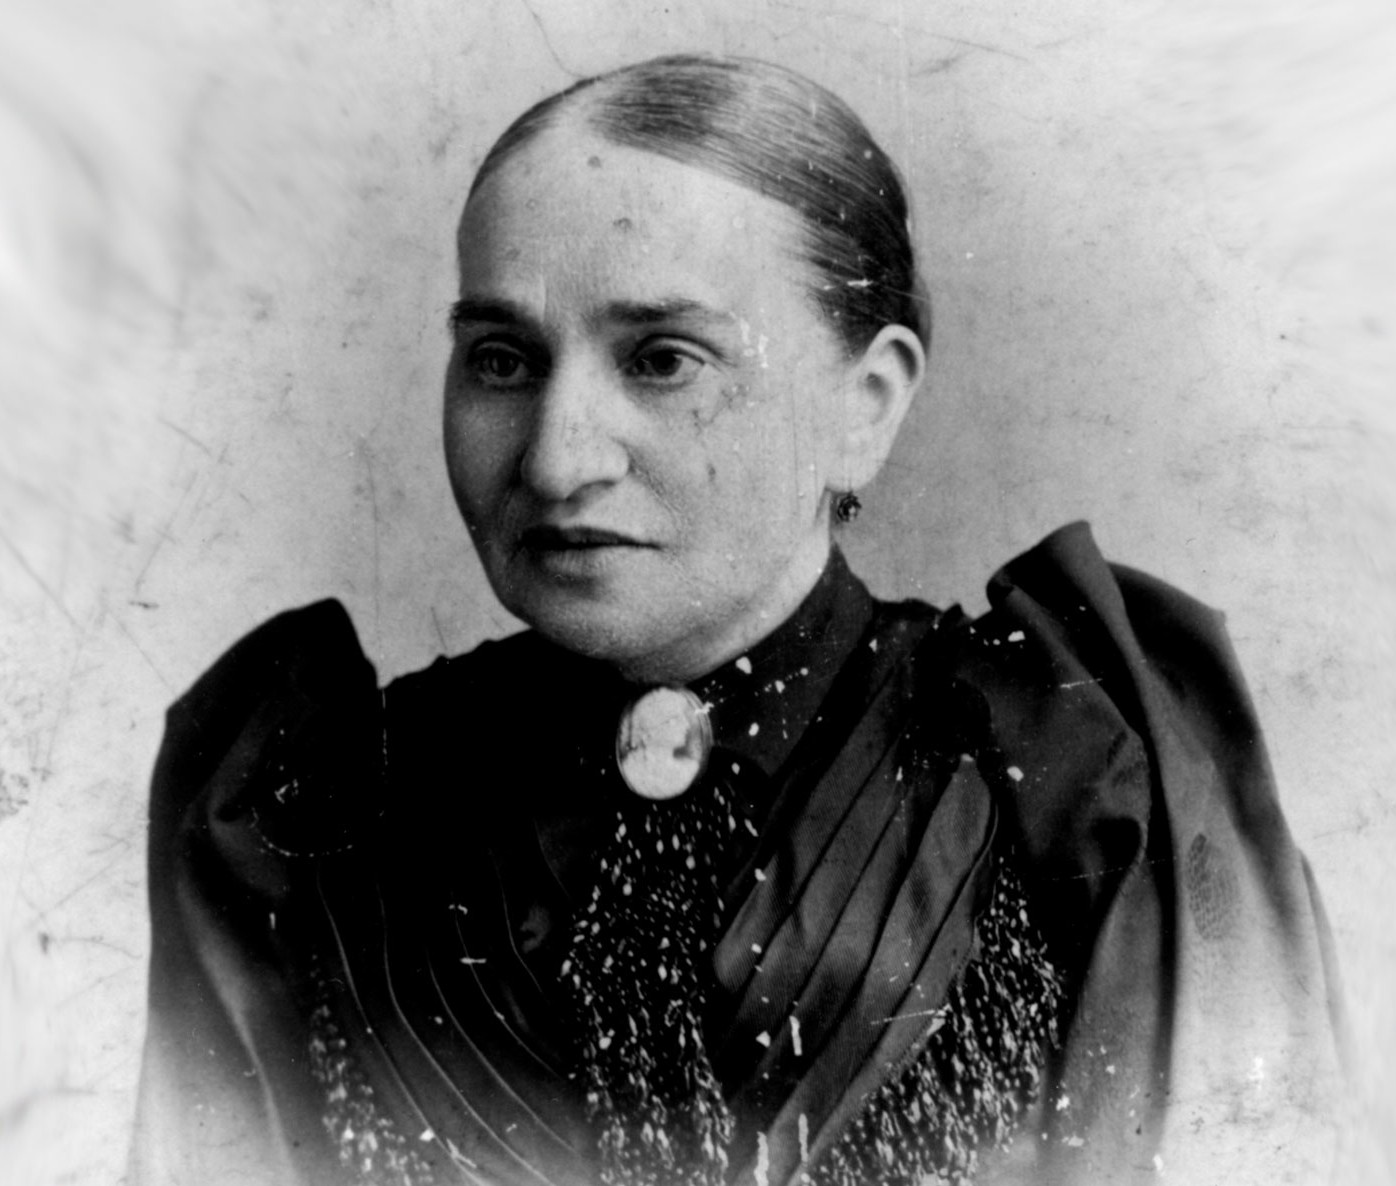 Black and white photo portrait of Natalie Gumpertz wearing her hair pulled back, a brooch, and a black ruffled dress